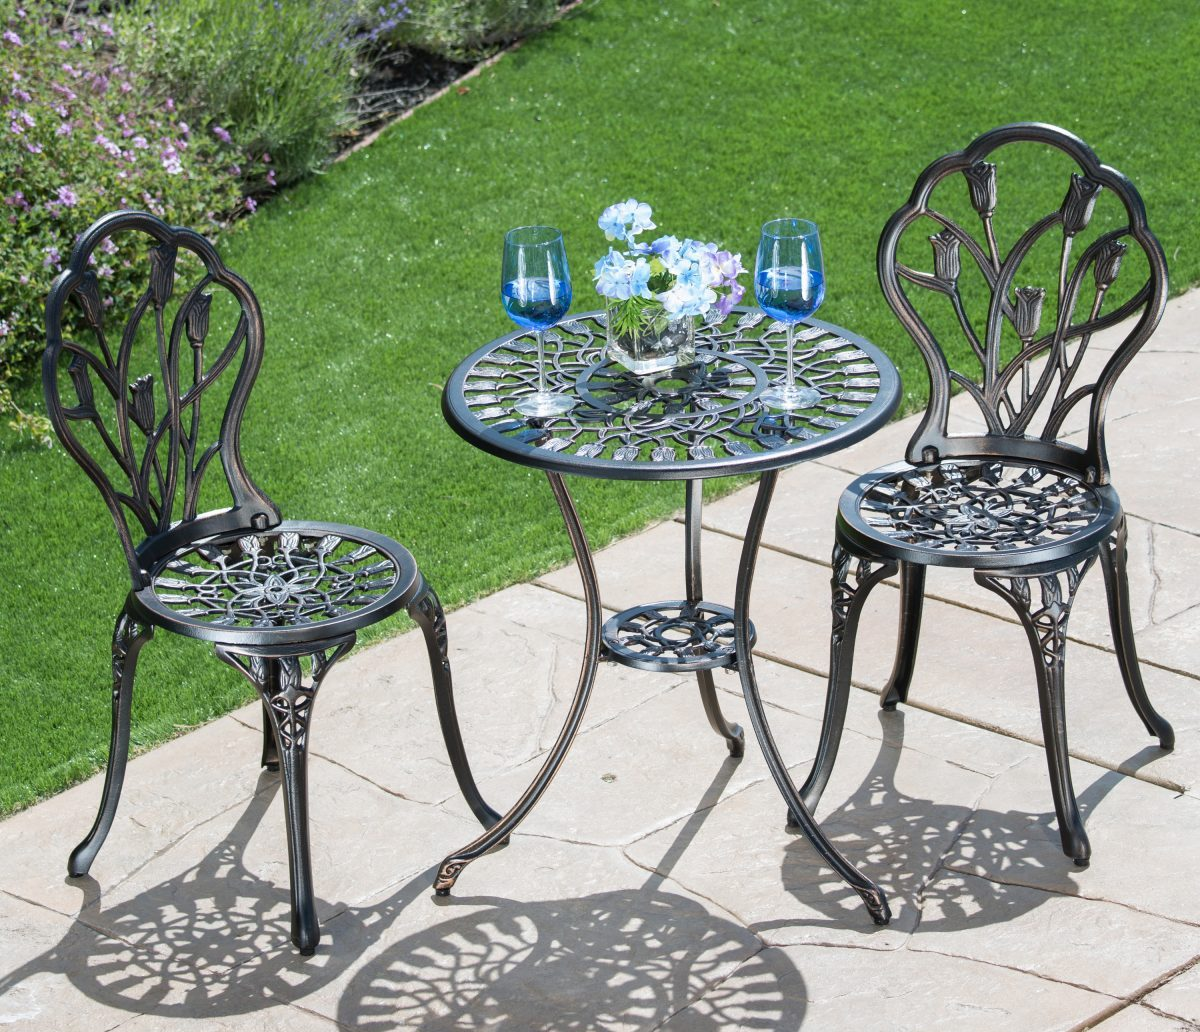 Corvus Casio 3-piece Antique Bronze Cast Aluminum Bistro Set